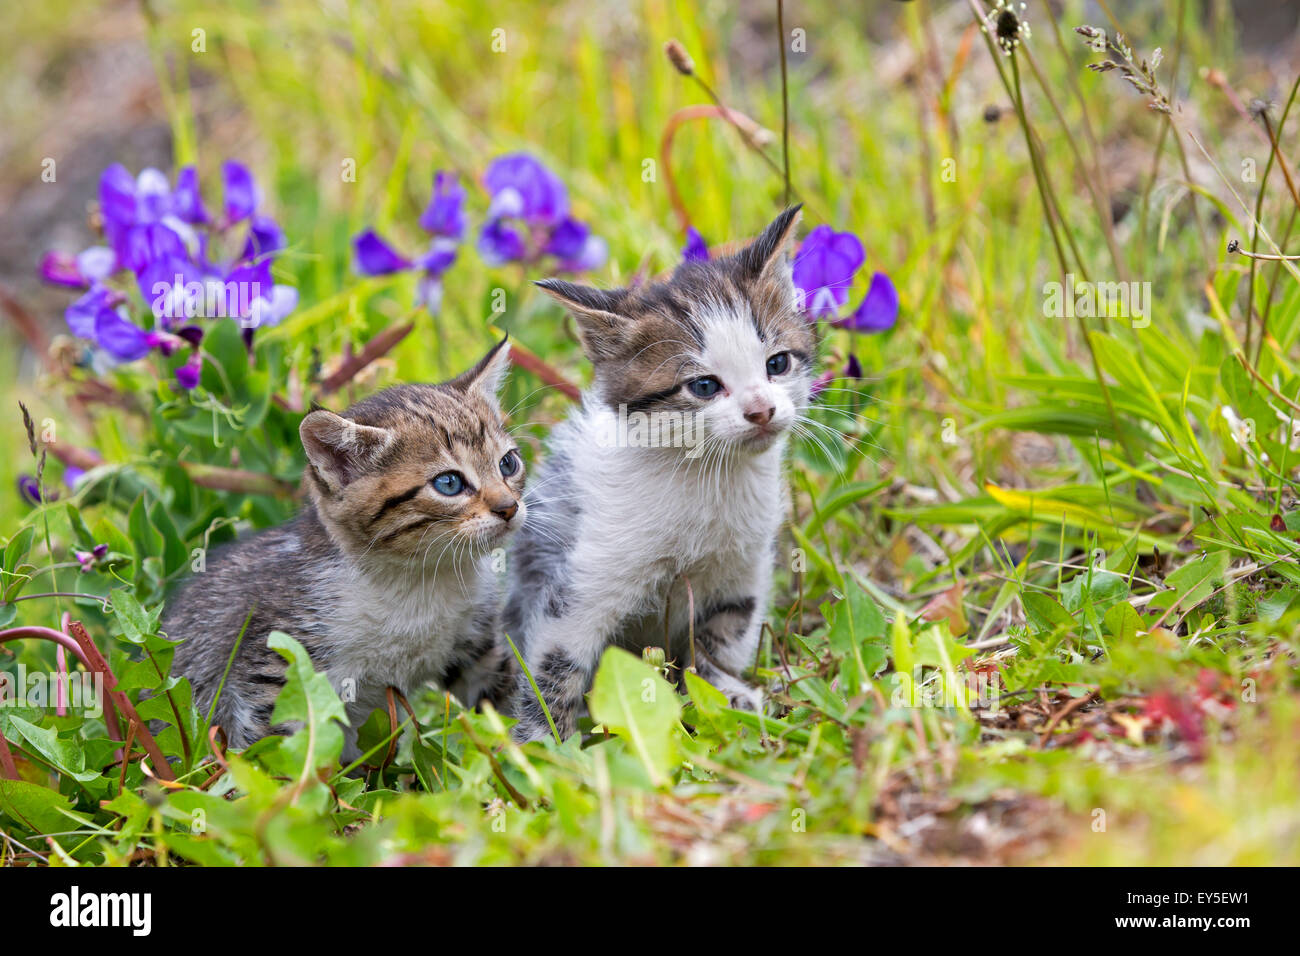 Tabby kittens in the grass - Torres del Paine Chile - Stock Image